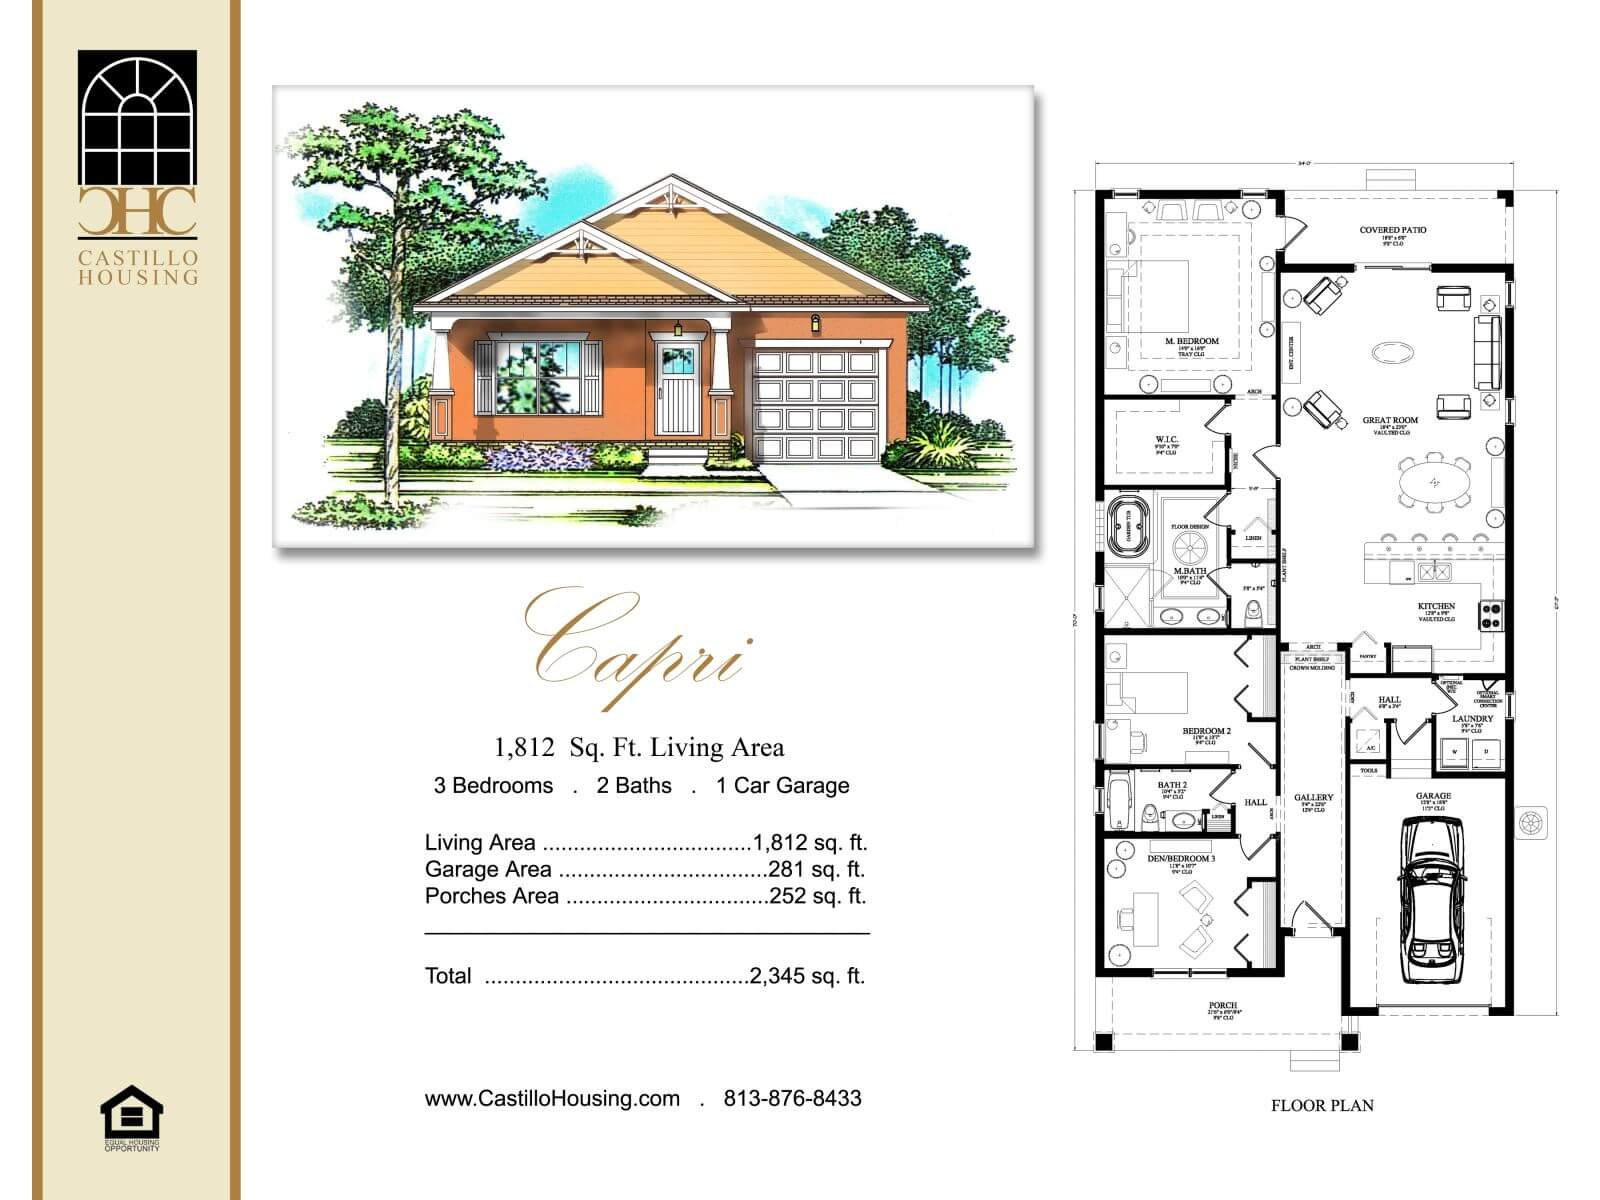 Floor Plans,1,001 SQ FT TO 2,000 SQ FT,1005